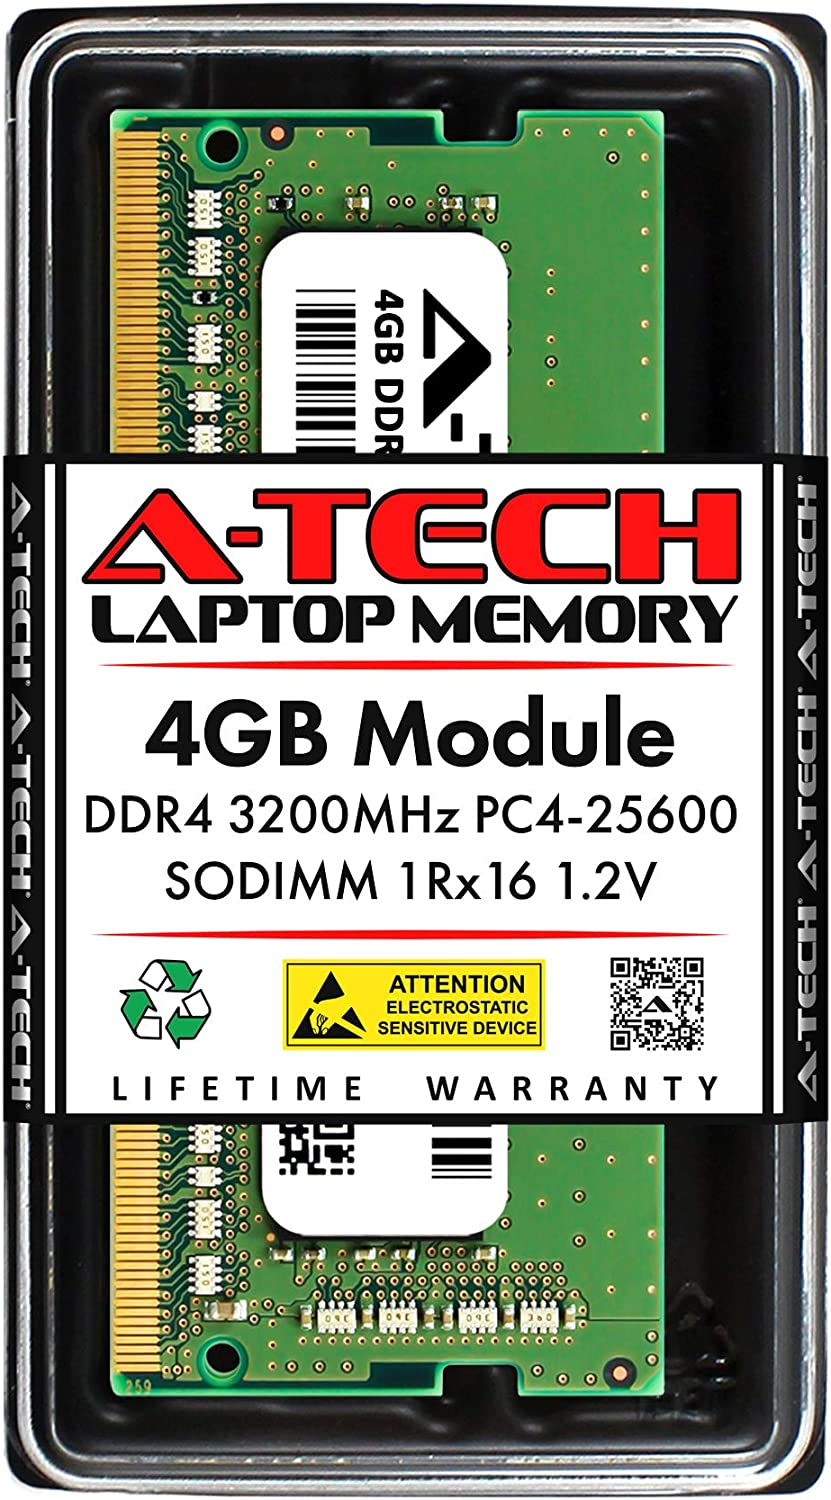 A-Tech 4GB Memory RAM for Dell Vostro 15 7000 7500 - DDR4 3200MHz PC4-25600 Non ECC SO-DIMM 1Rx16 1.2V - Single Laptop & Notebook Upgrade Module (Replacement for SNPCDT82C/4G)